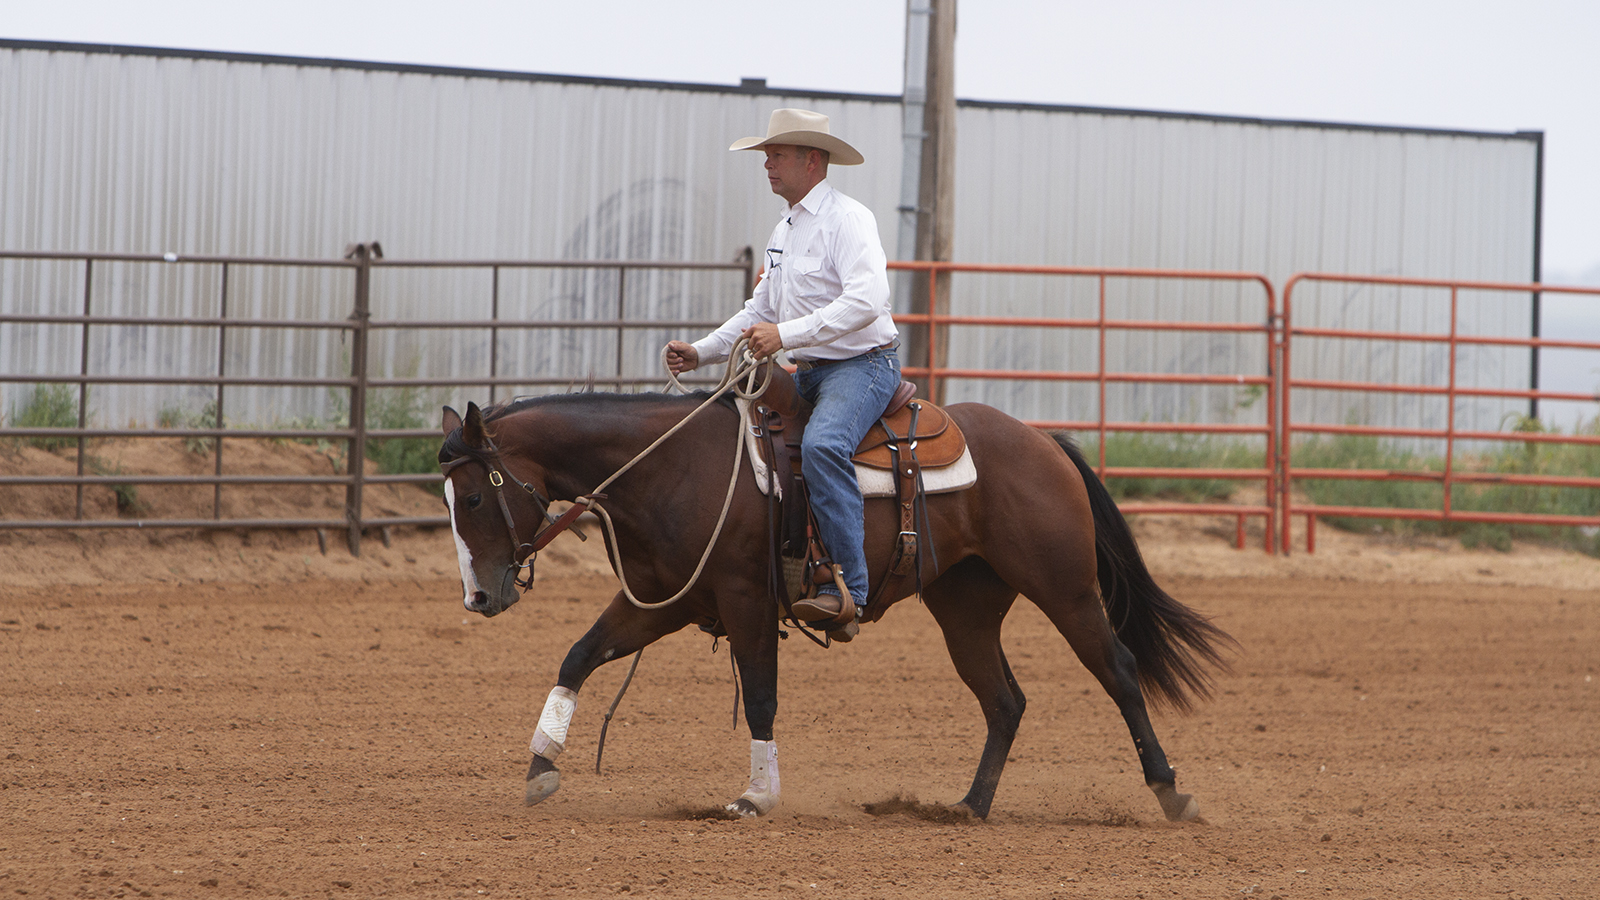 Trevor Carter uses a fenceline or long side of an arena to teach flying lead changes.